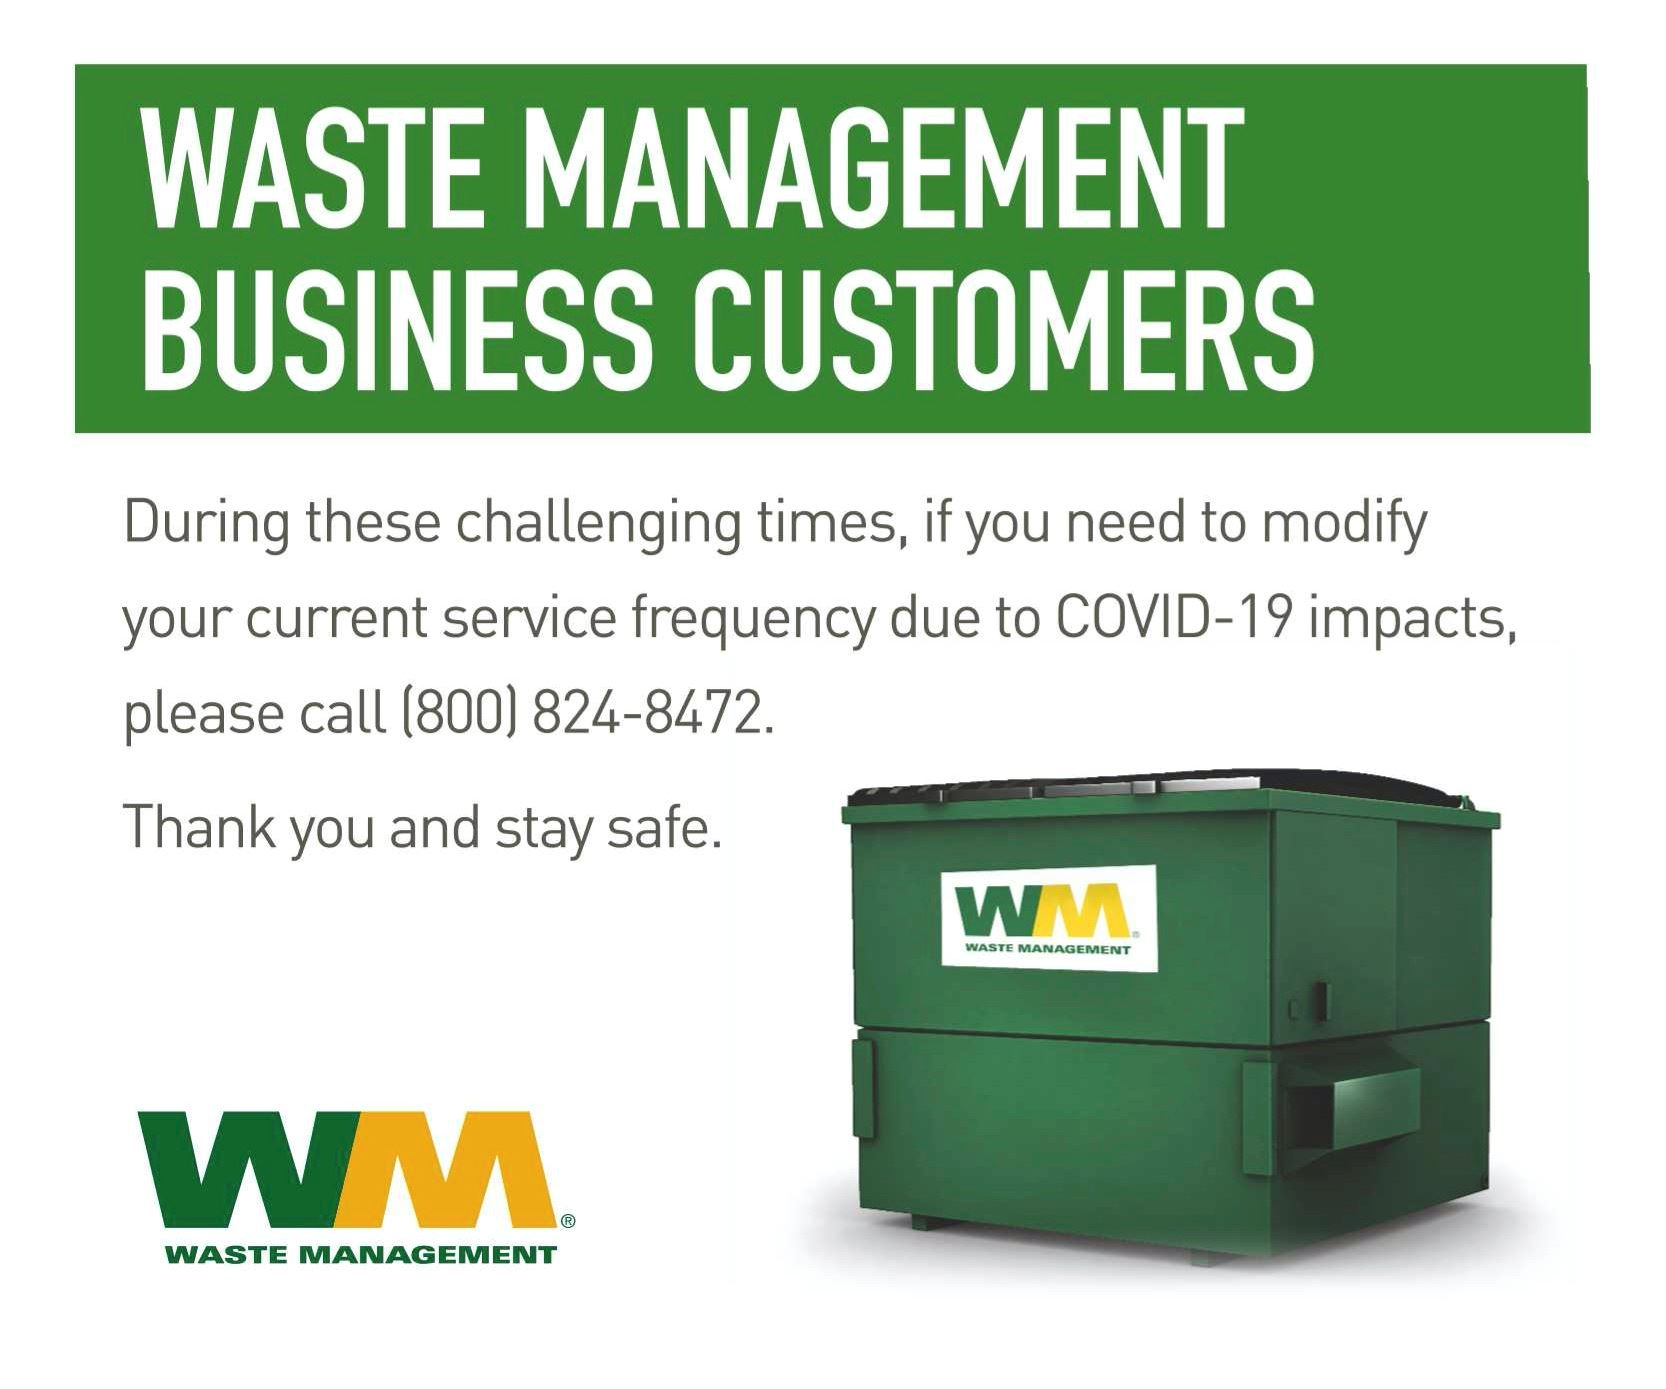 Waste Management Business Customers